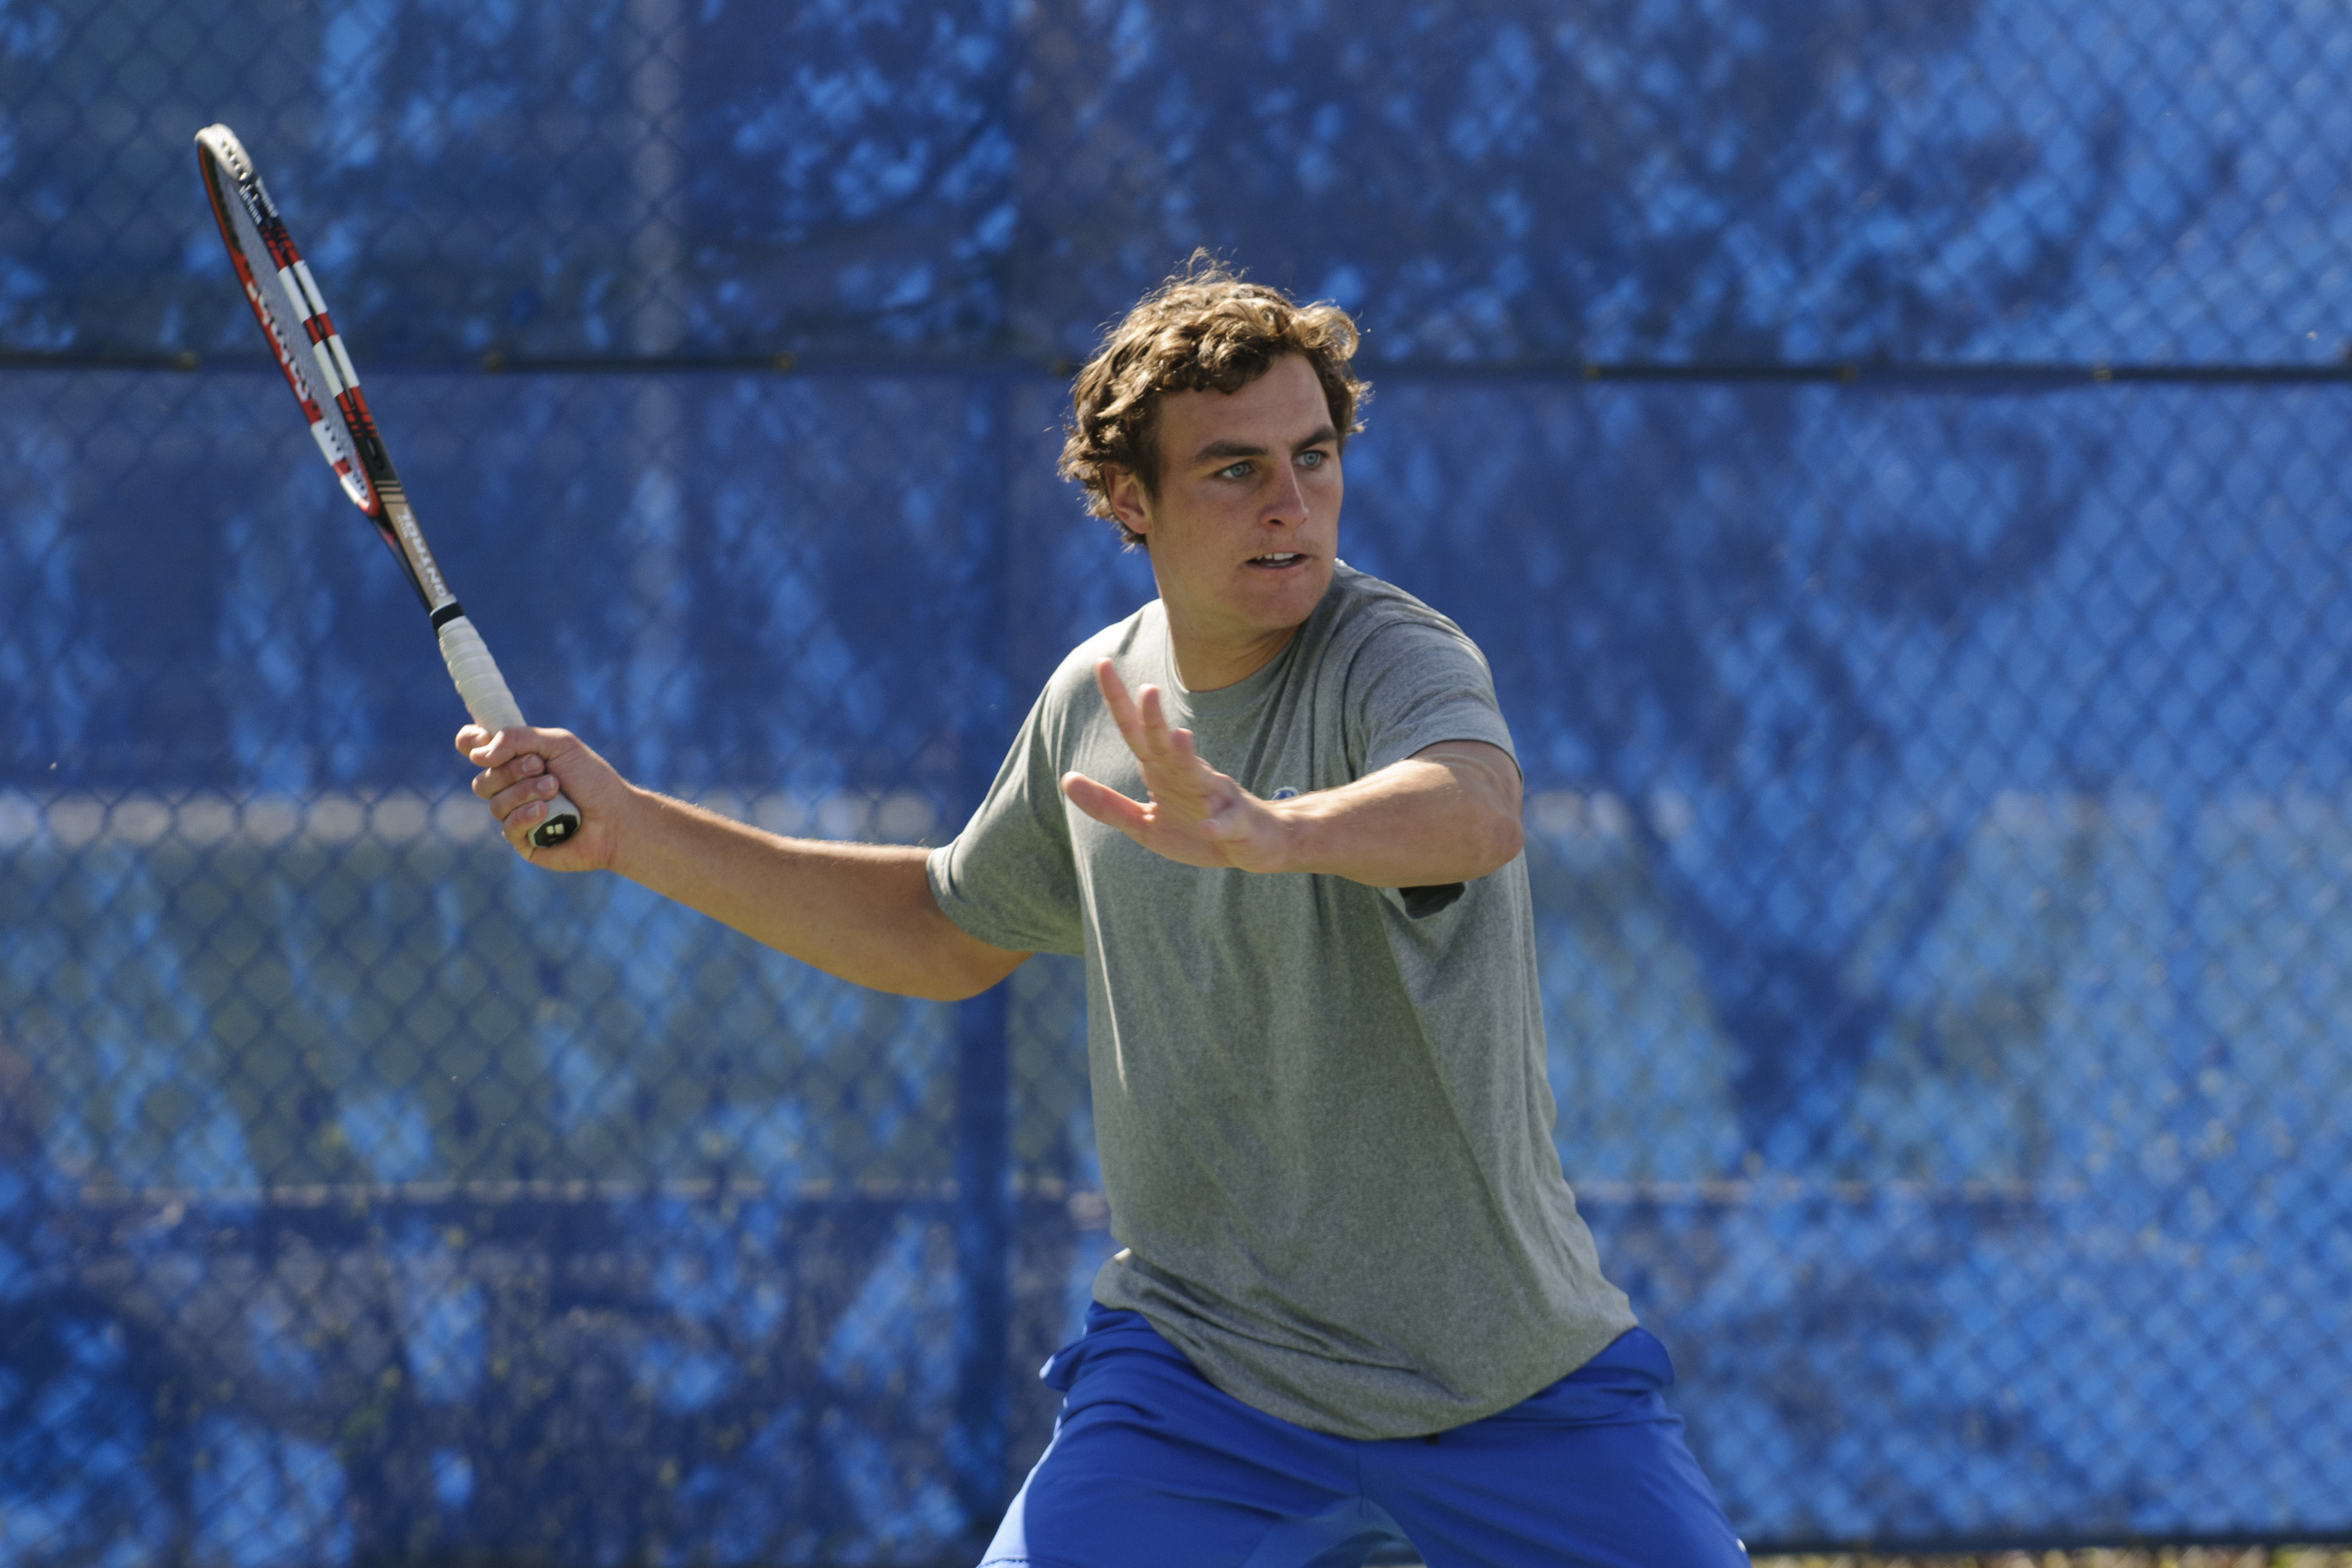 Garrett Patton has won seven consecutive matches in singles.